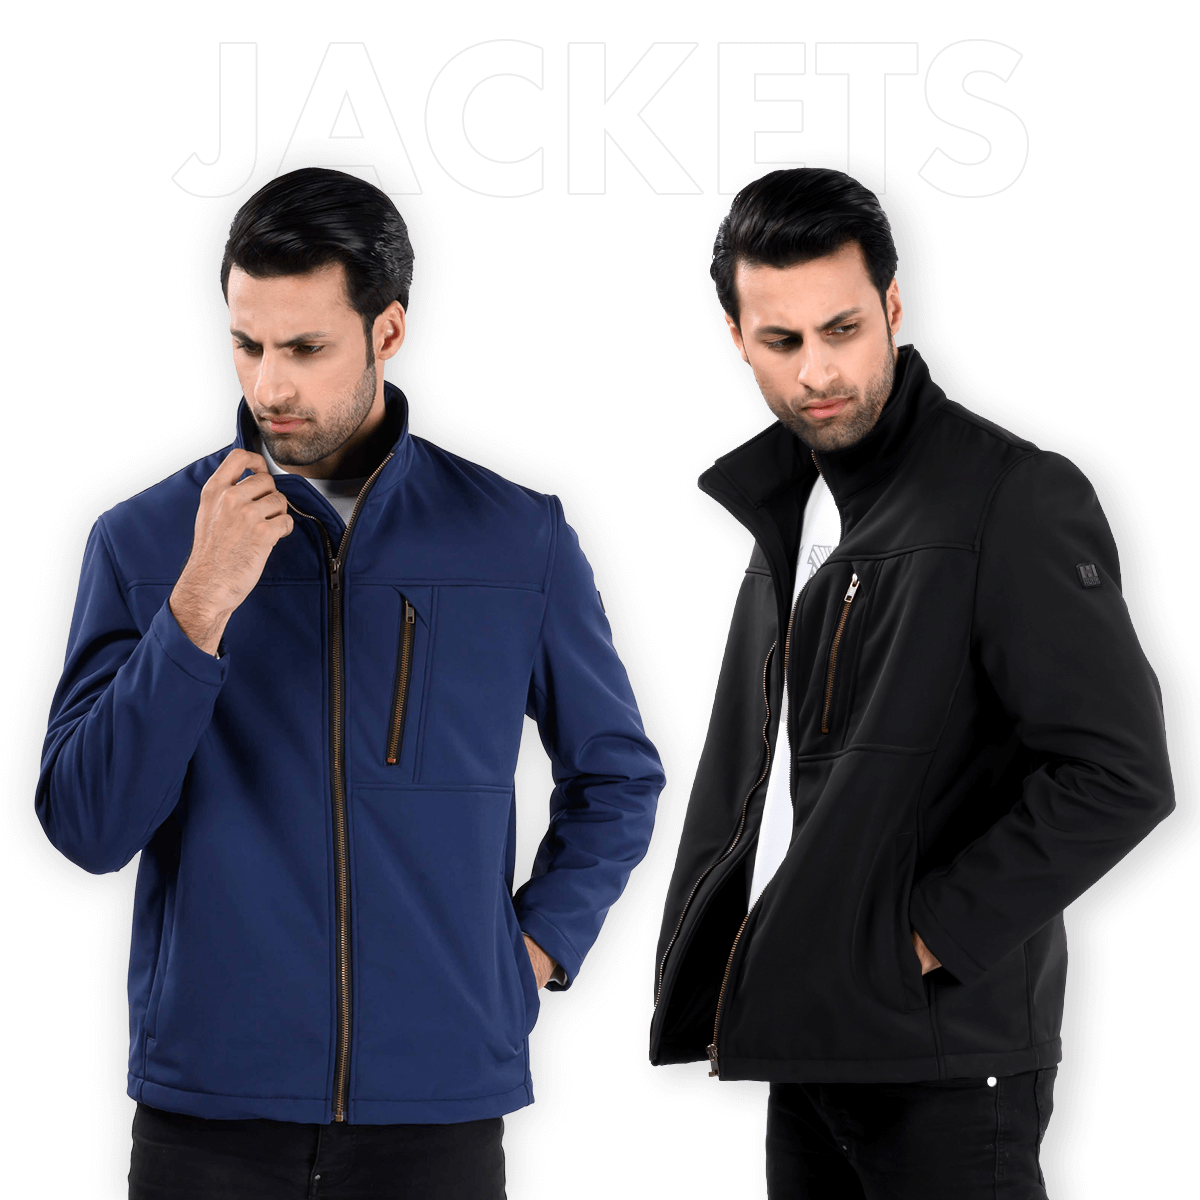 Try Fashionable Softshell Jacket for Chilly Winters